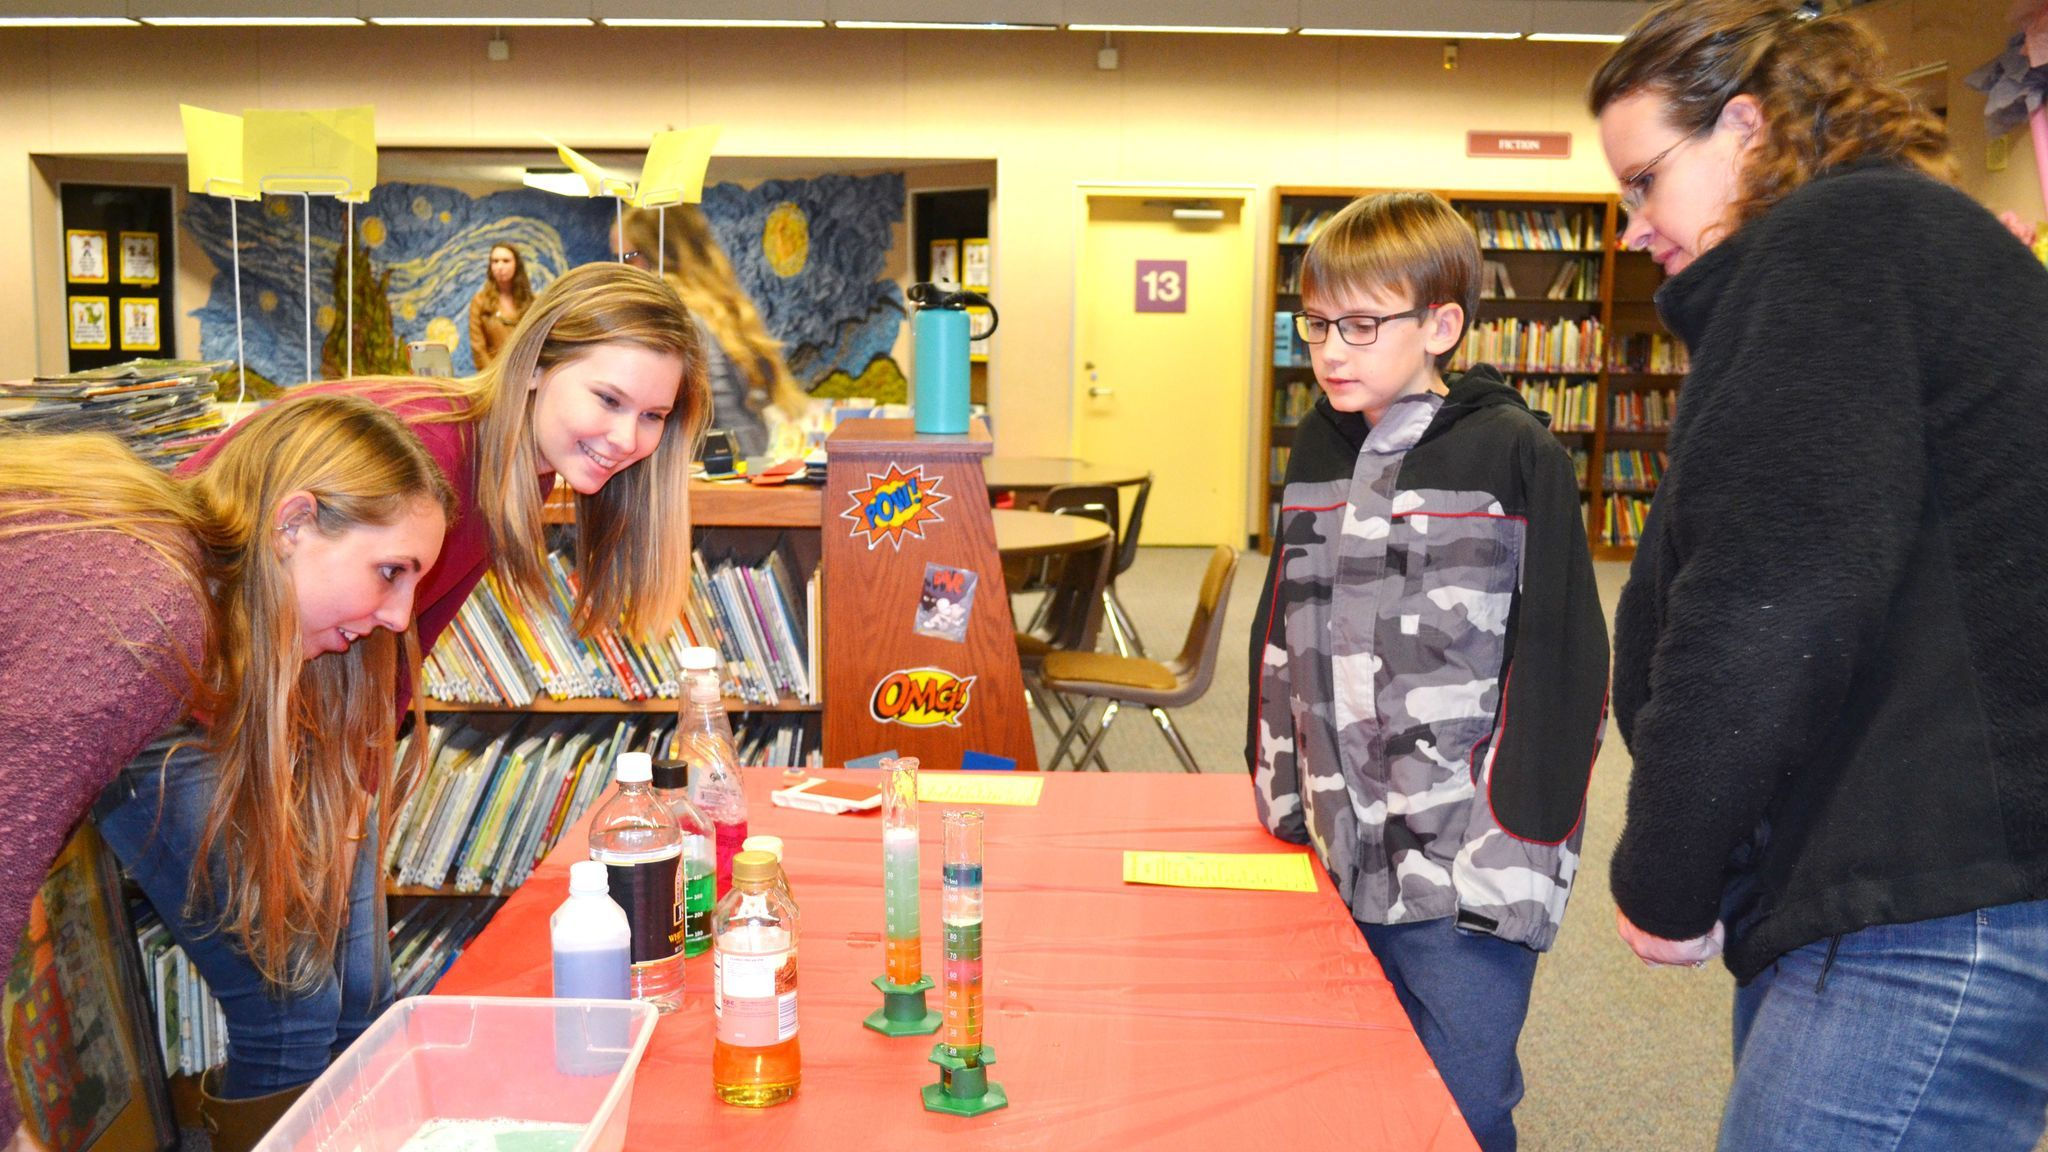 High schoolers open world of science at James Dukes - The ...